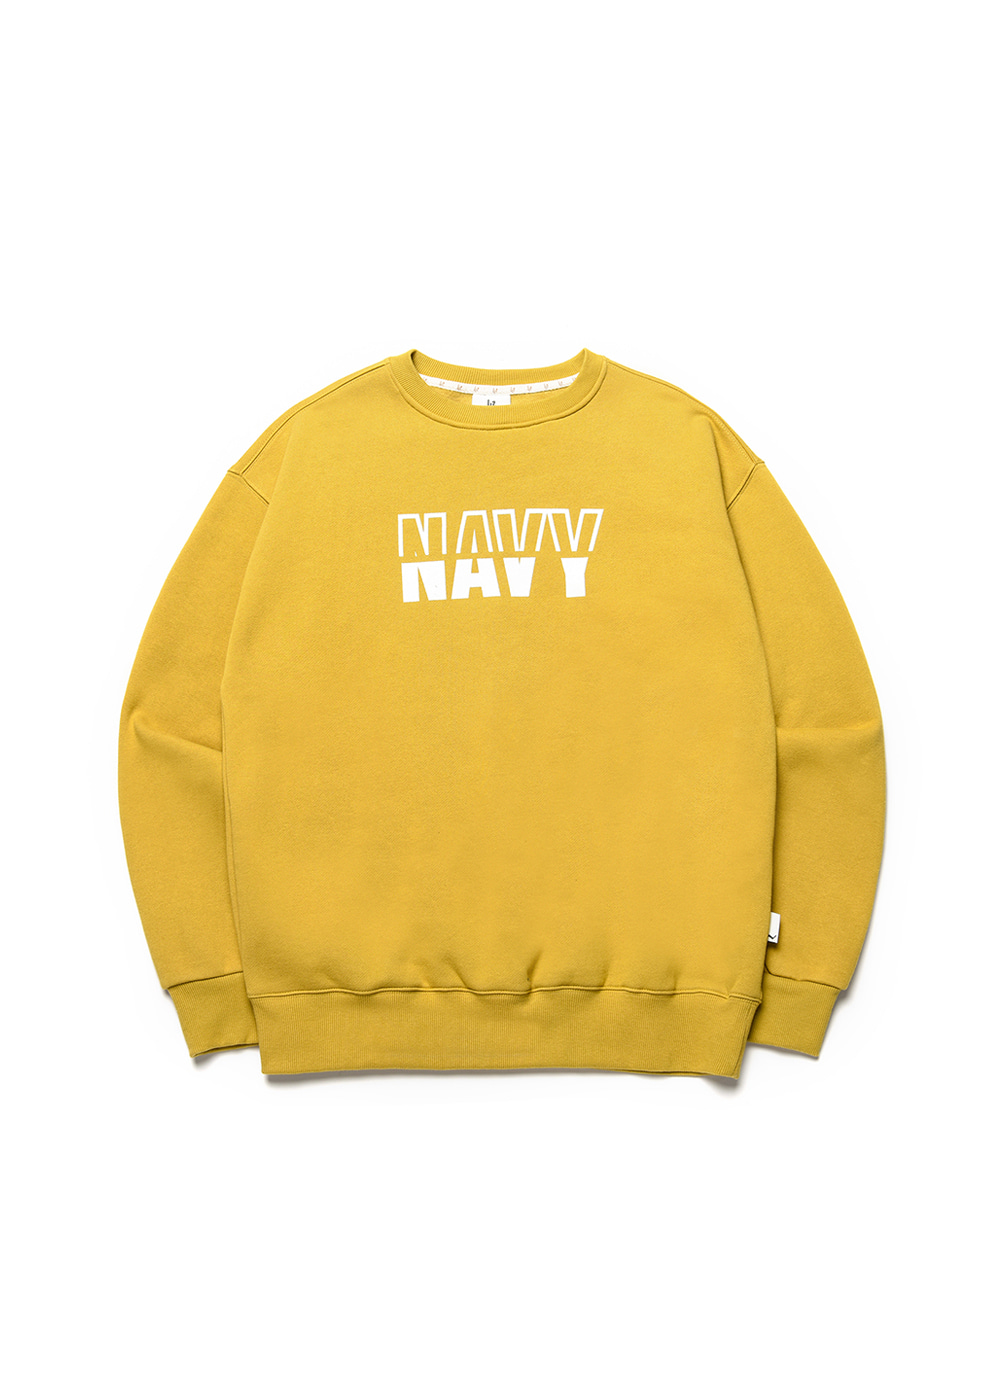 Navy sweat shirt [mustard green]